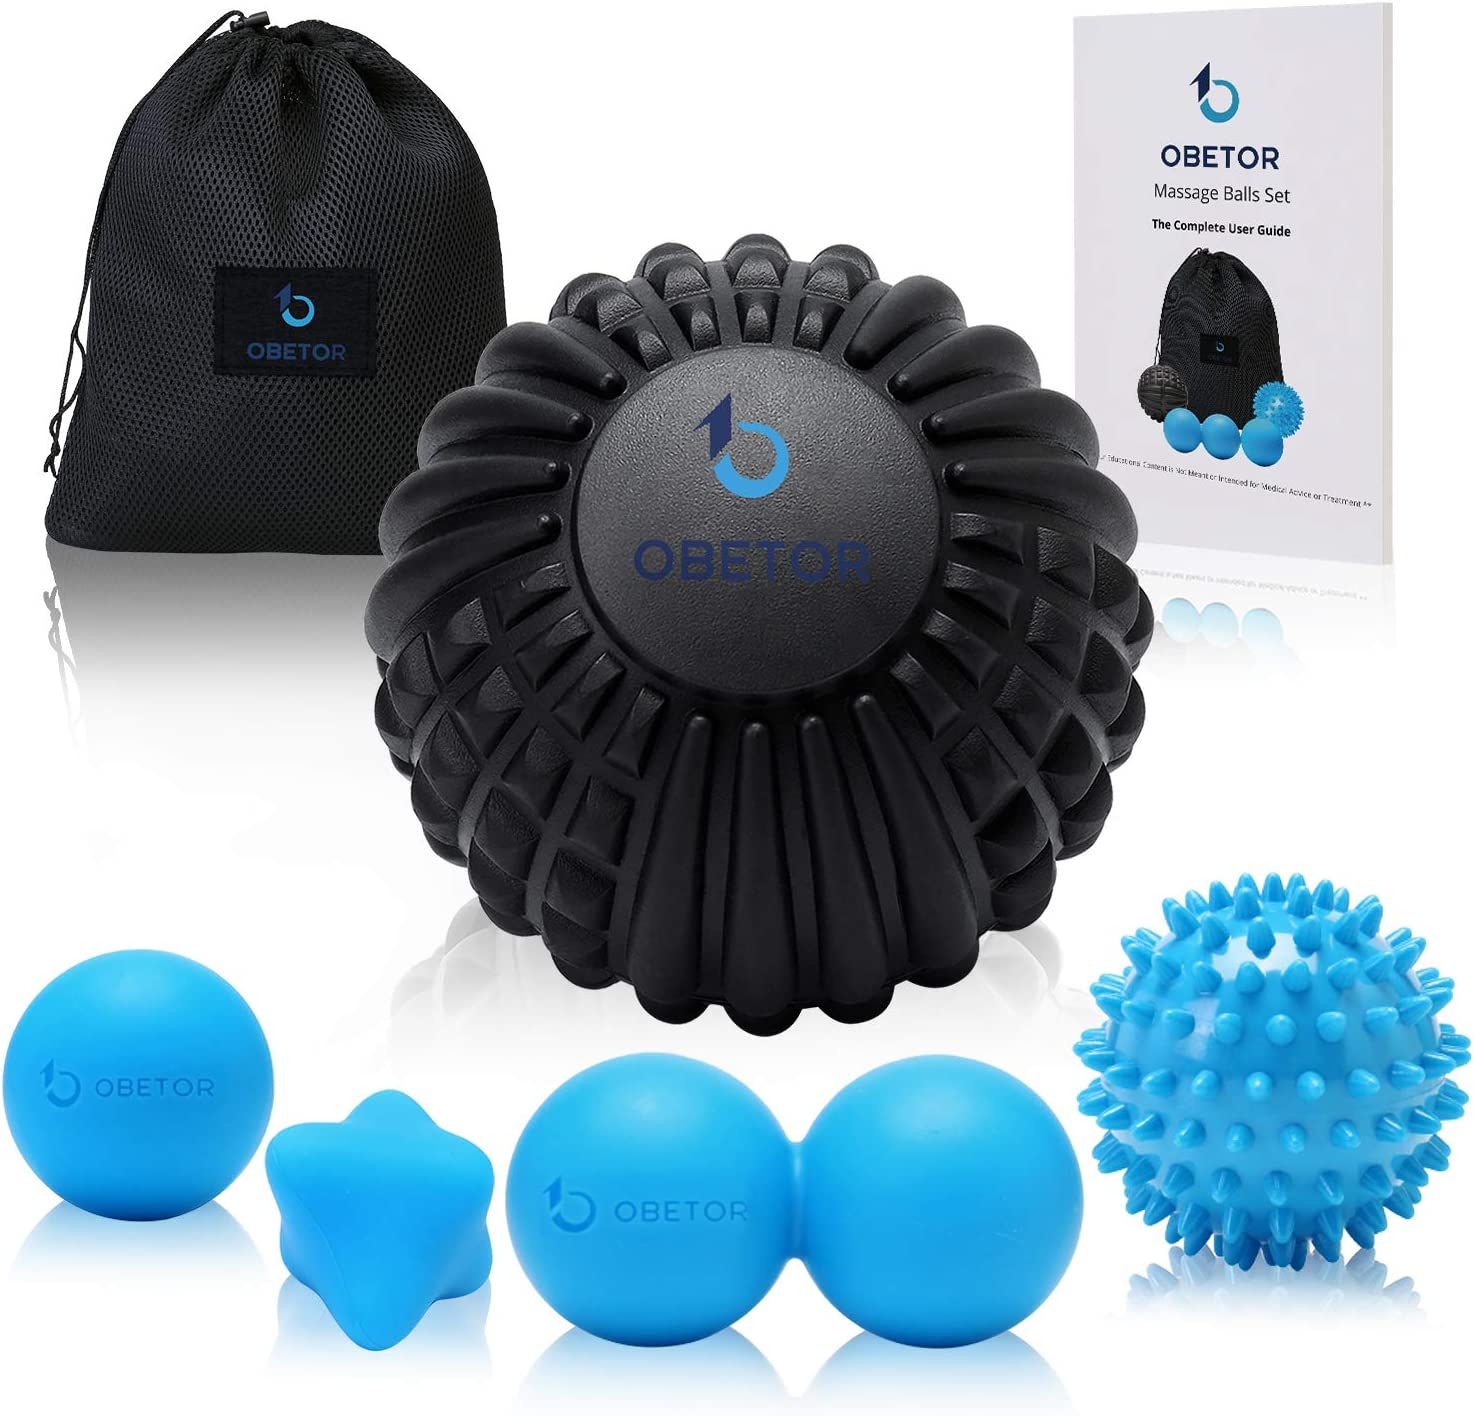 """OBETOR Massage Ball Set for Deep Tissue Muscle Knots, Trigger Point Physical Therapy, Myofascial Release, 5"""" Textured Mobility/Lacrosse/Peanut/Spiky/Hand Roller Ball for Back/Shoulder/Foot Pain Relief"""